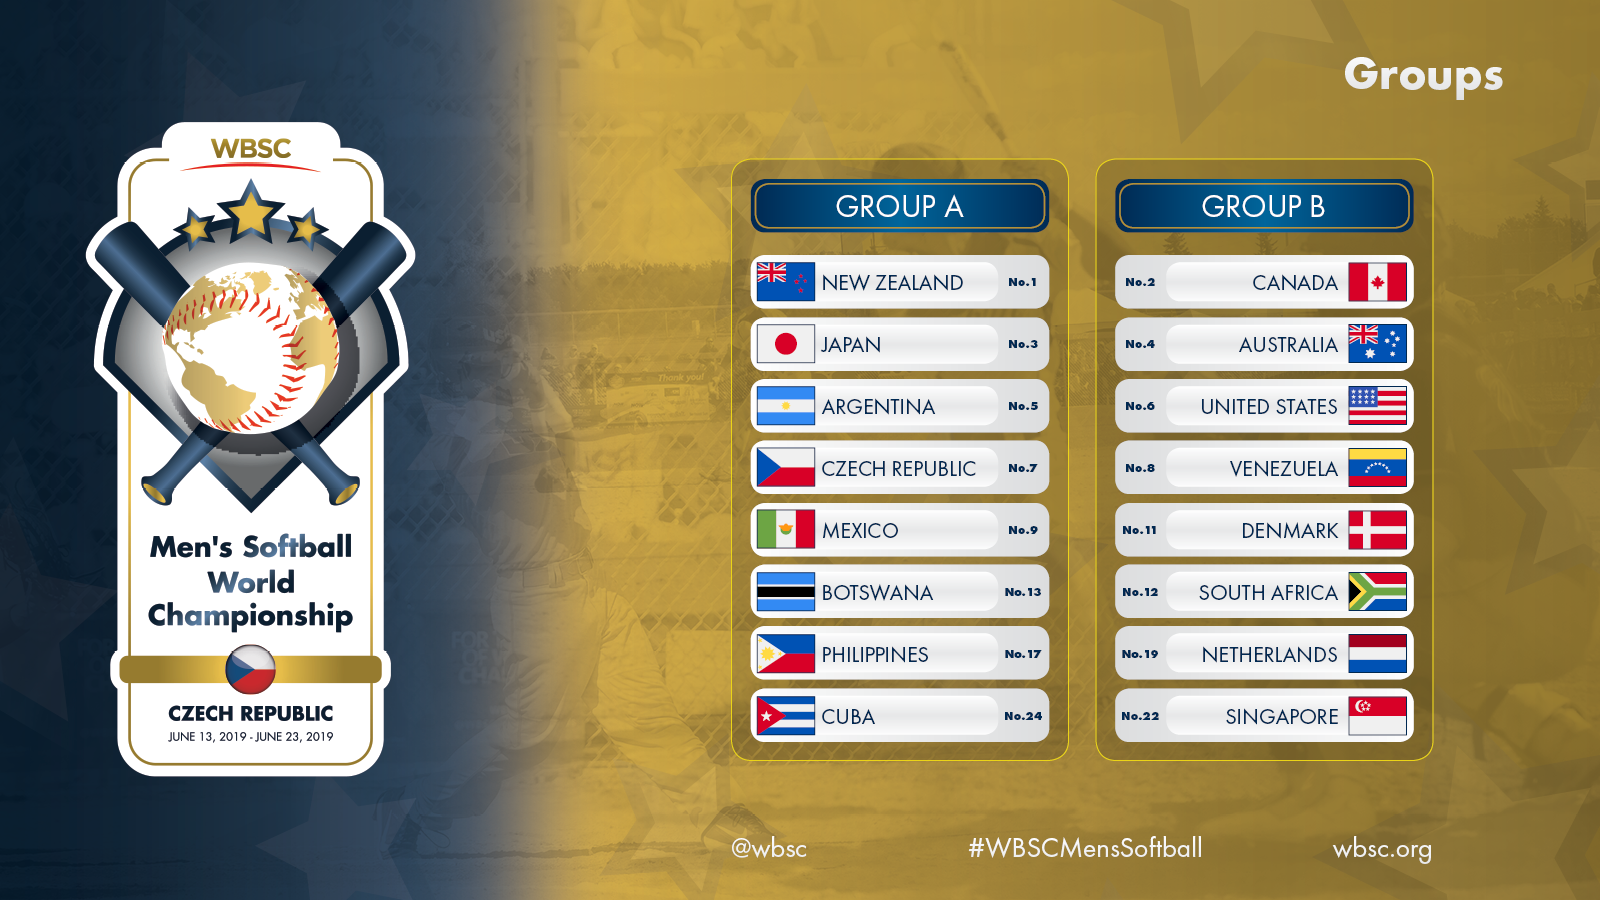 WBSC reveals groups, schedule for Men's Softball World Championship 2019